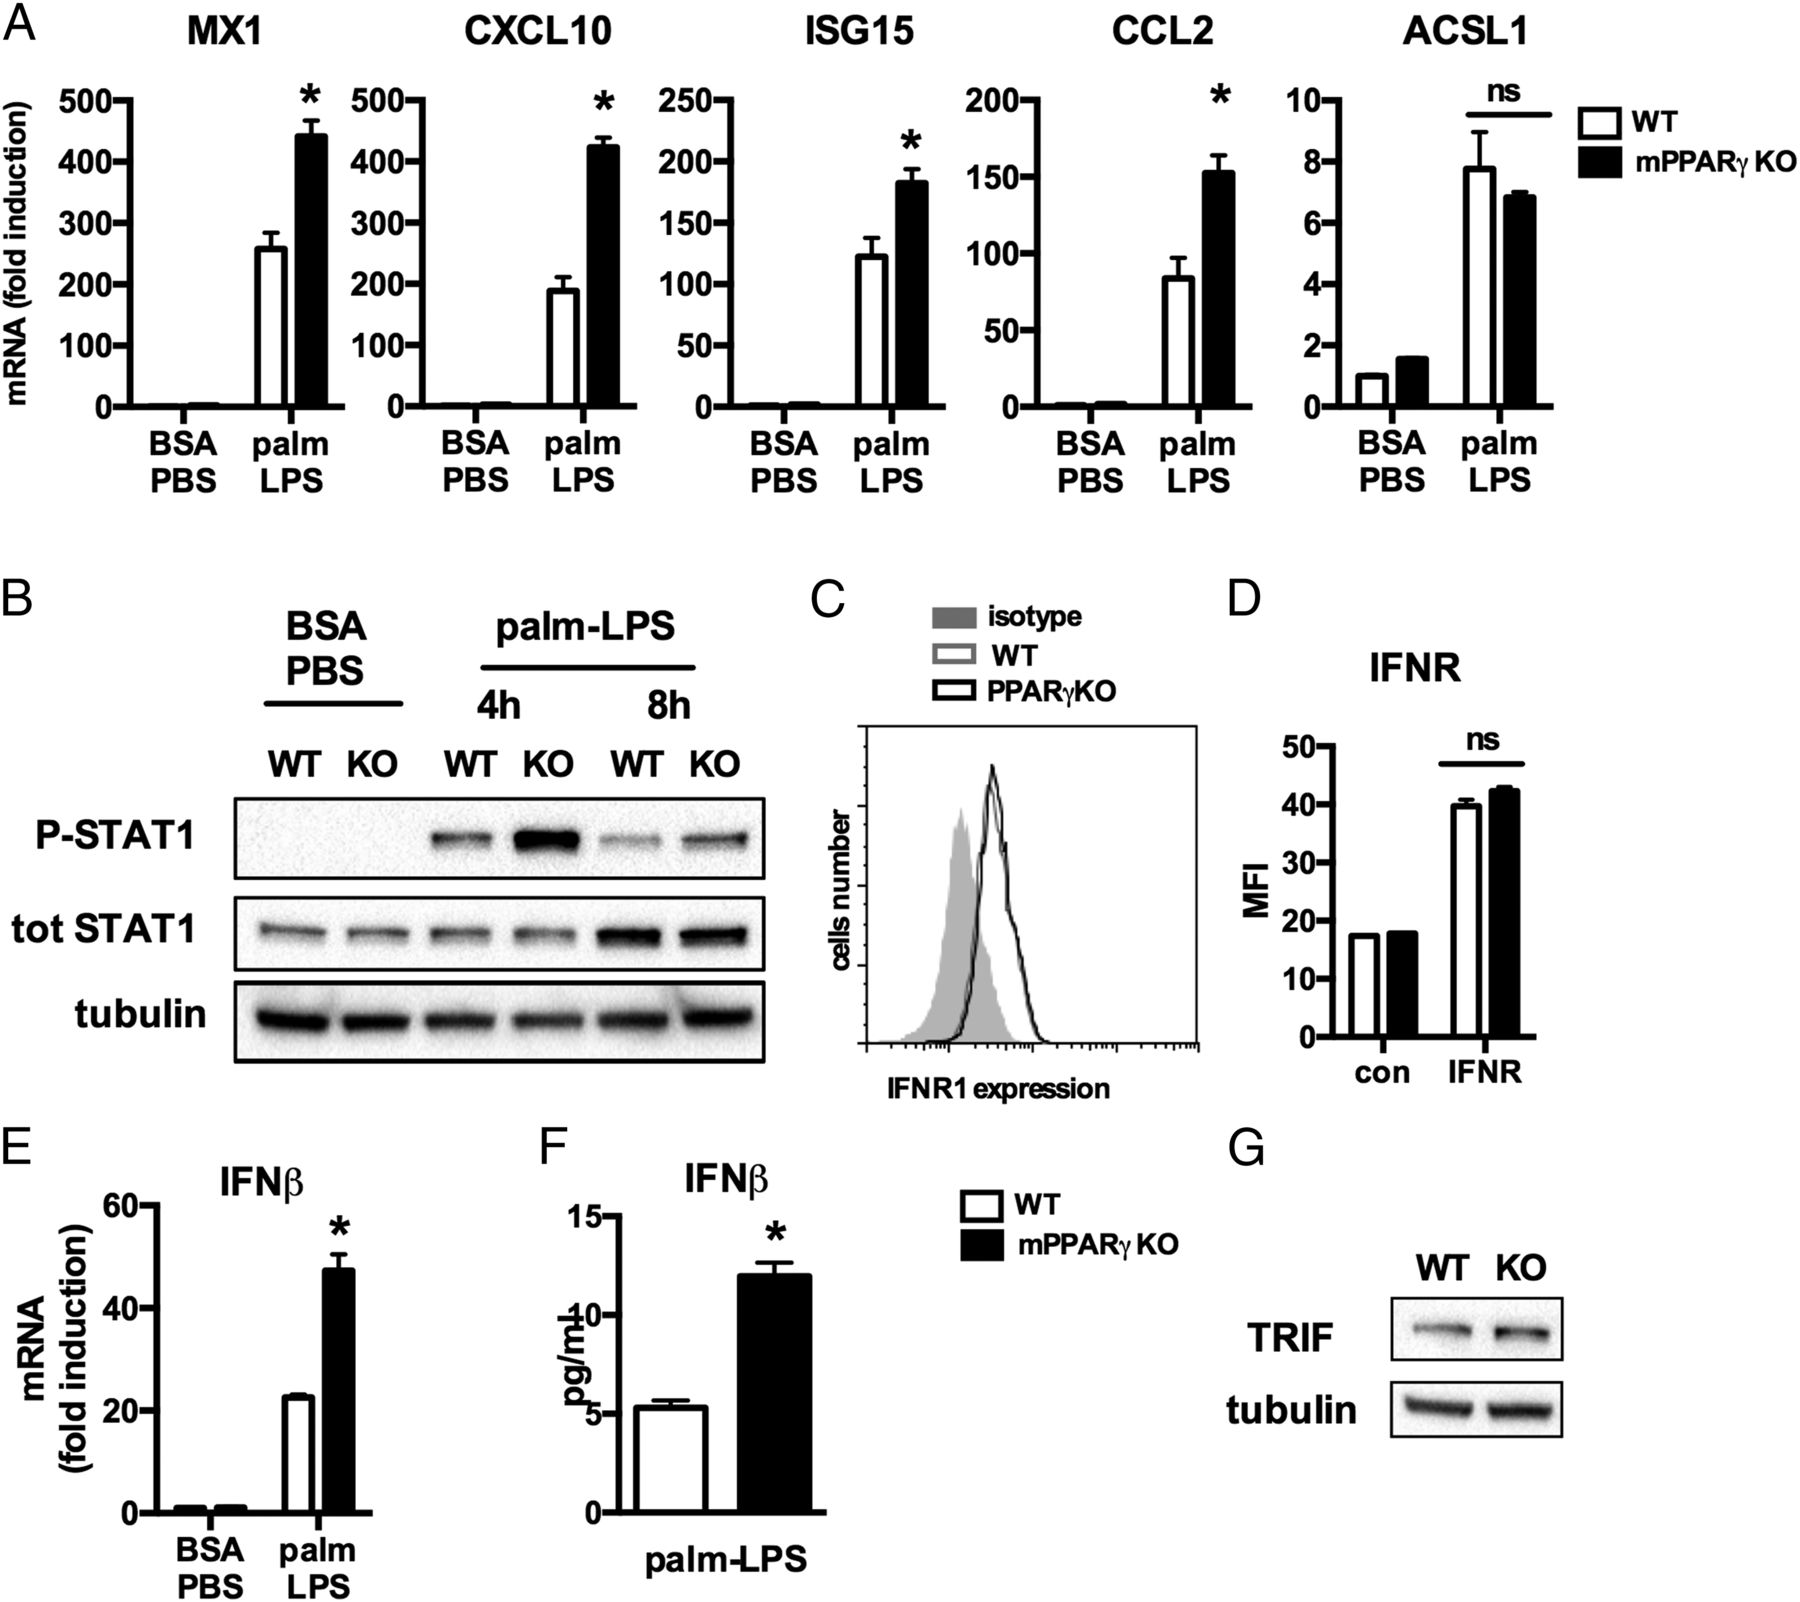 Ppar Deficiency Suppresses The Release Of Il 1 And In Ory Power Plant Diagram Continued Download Figure